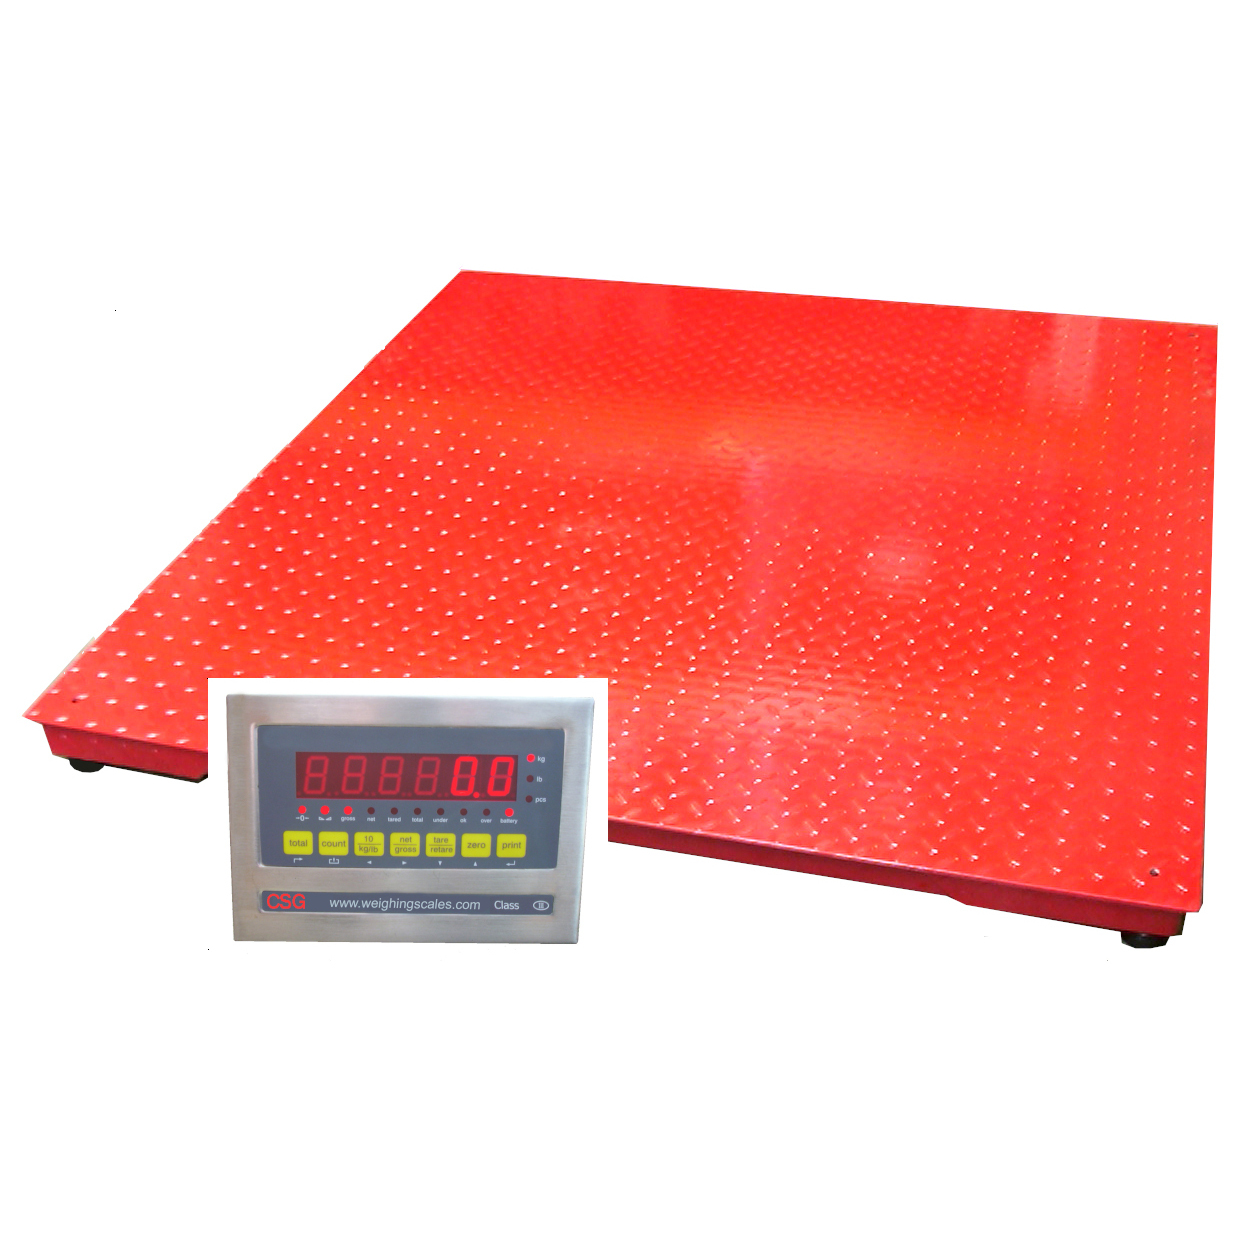 Weighing Platforms from weighingscales.com